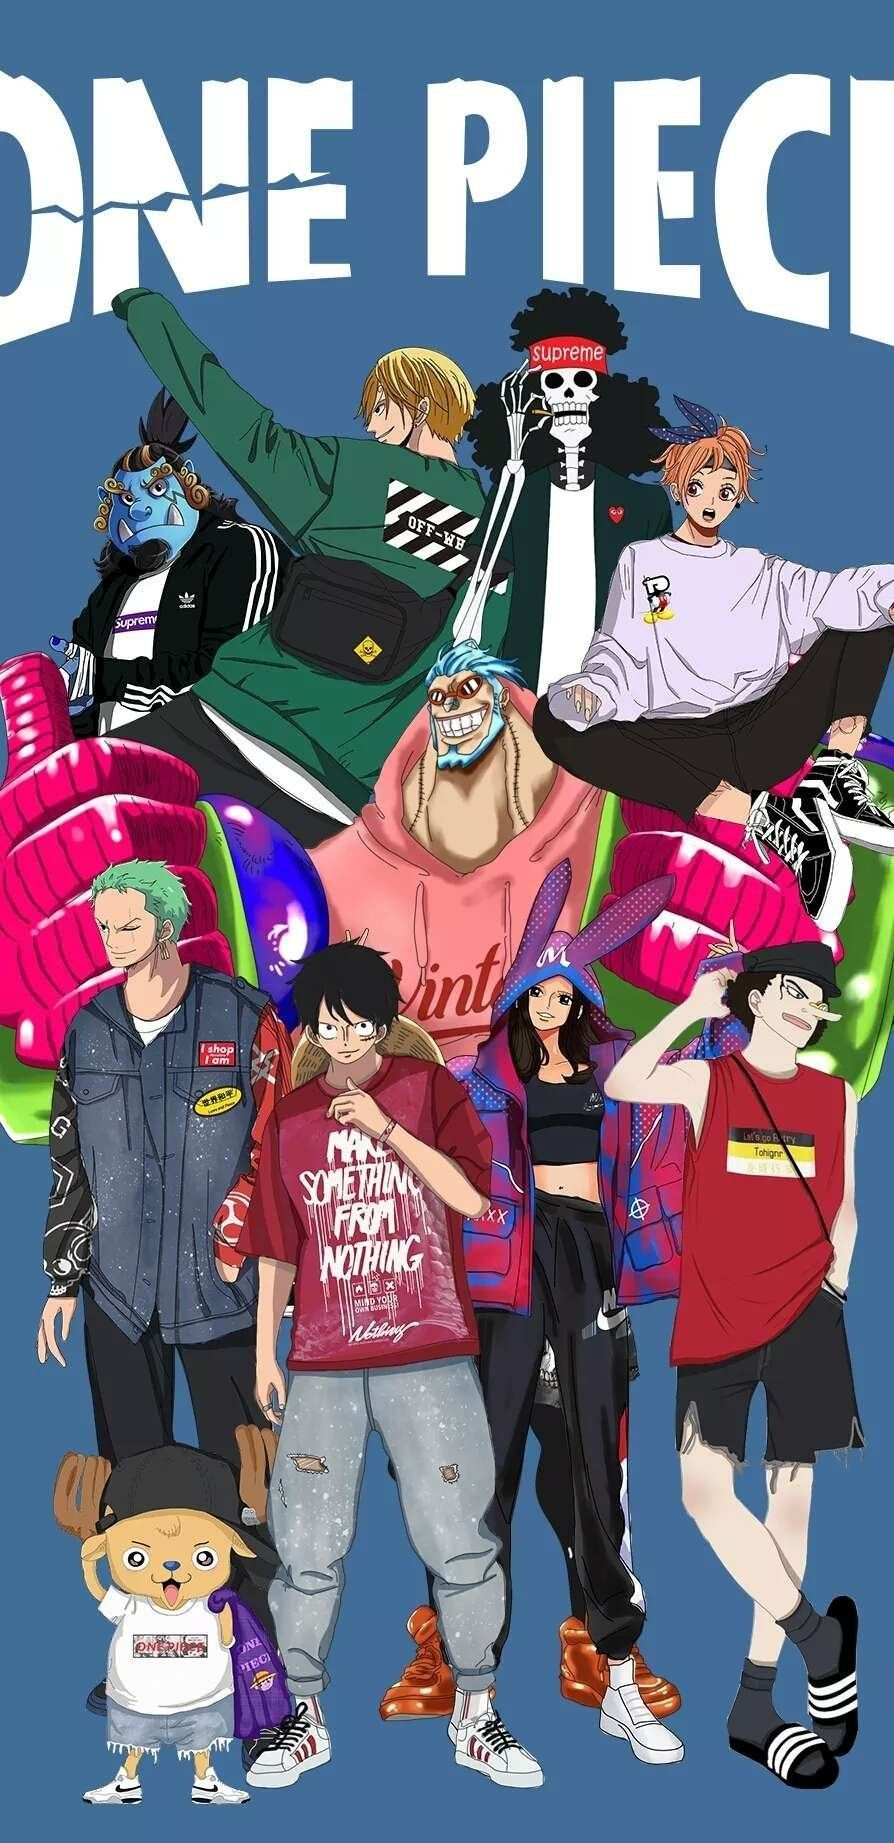 Supreme One Piece Wallpapers - Wallpaper Cave